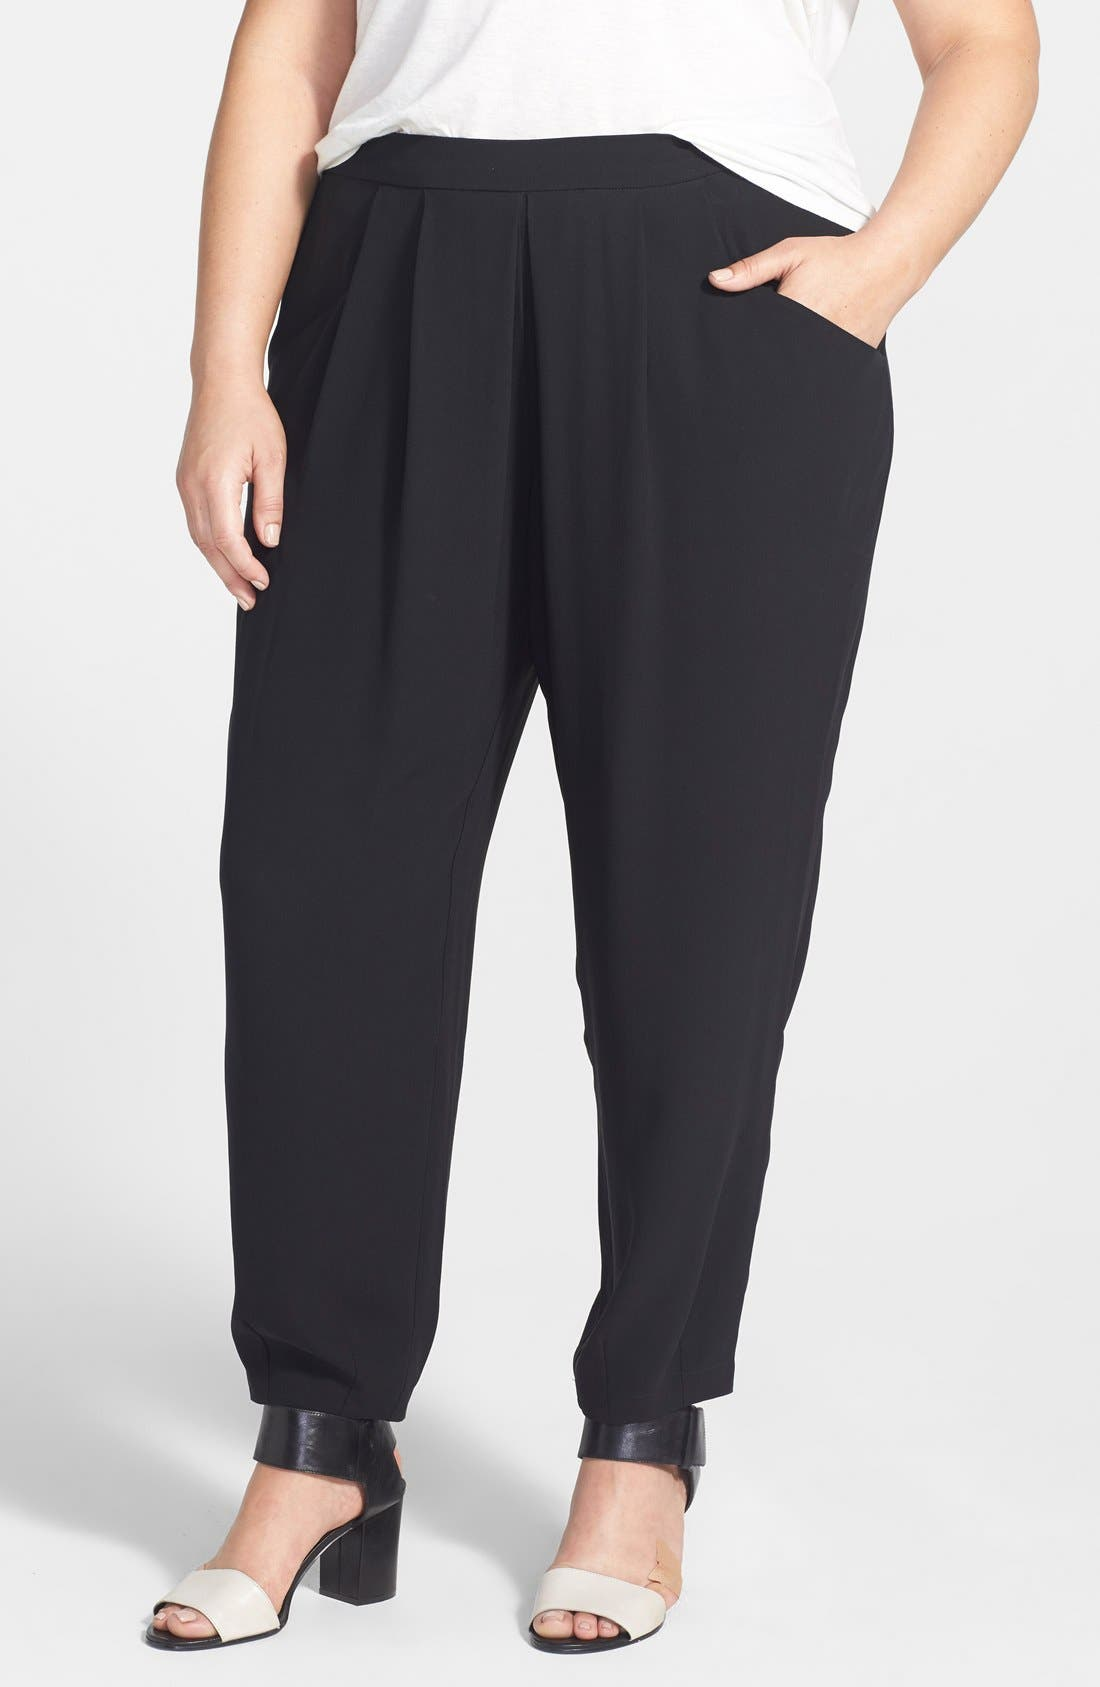 Find silk plus size pants at ShopStyle. Shop the latest collection of silk plus size pants from the most popular stores - all in one place.